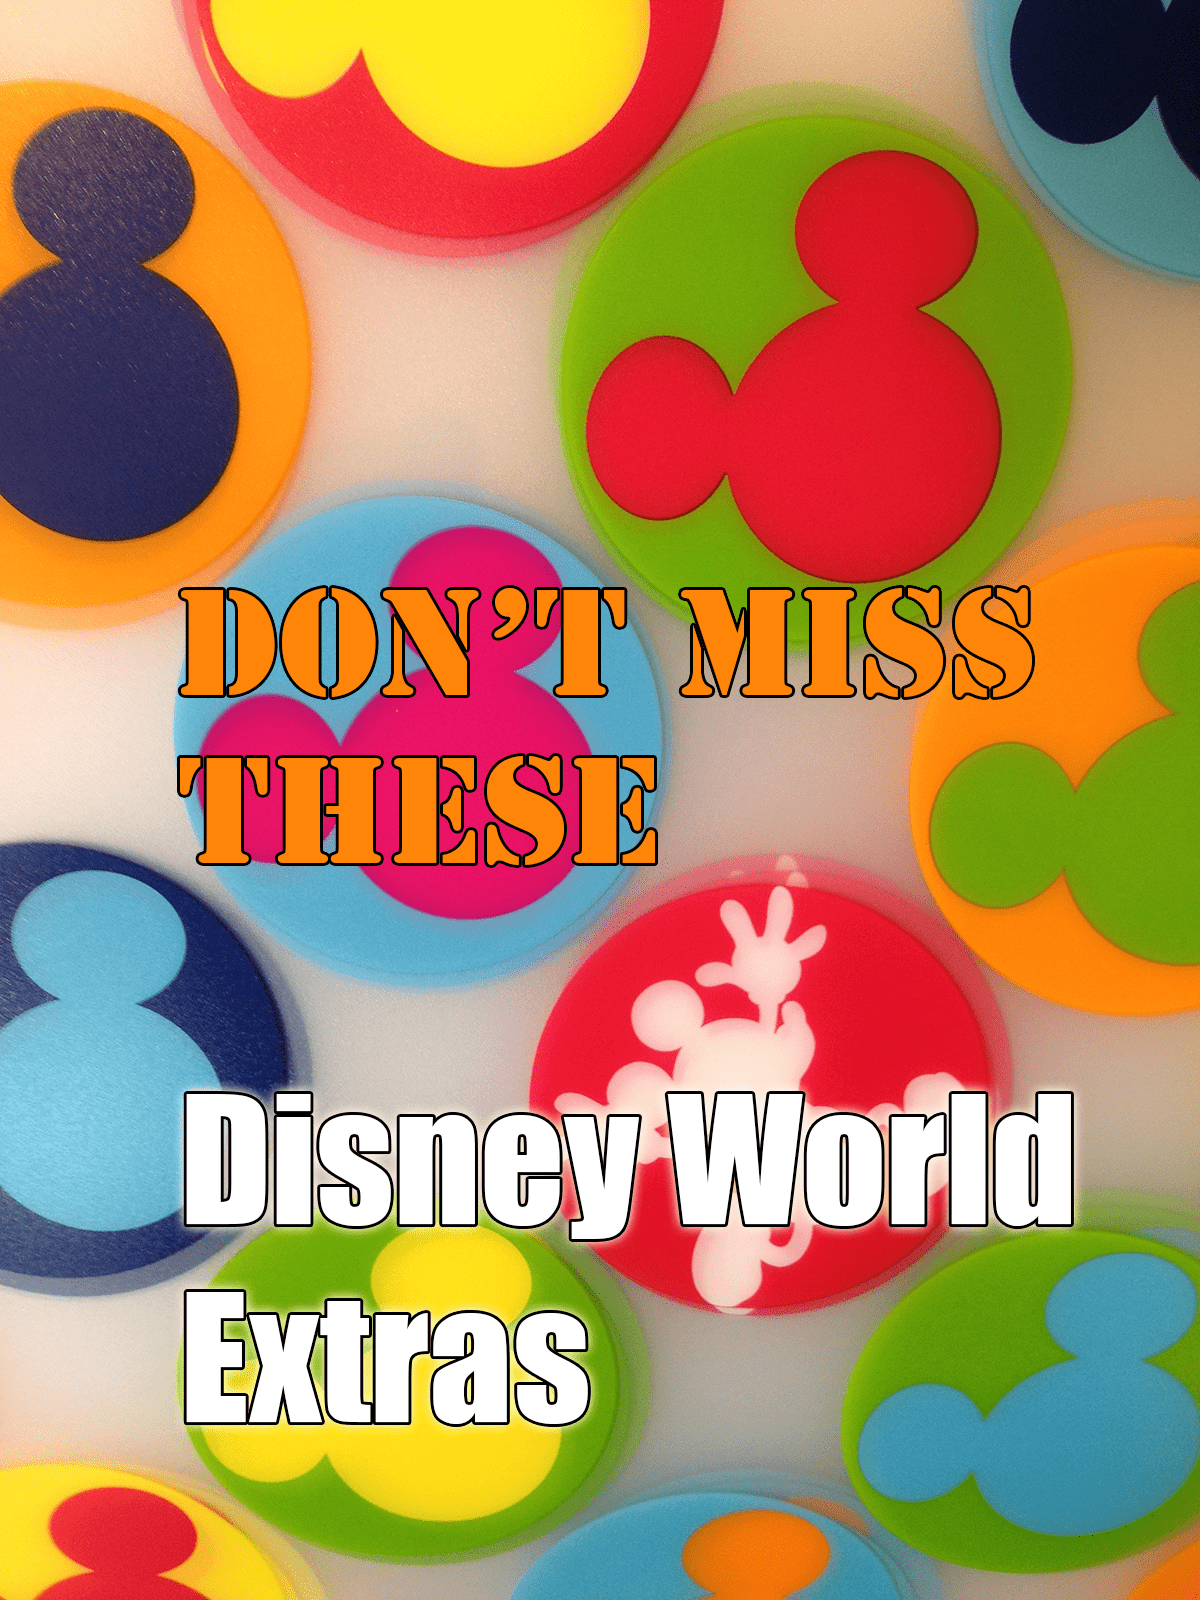 There is so much now at Walt Disney World.  These are our top extras and Disney special events you might want to pick for your Disney vacation.